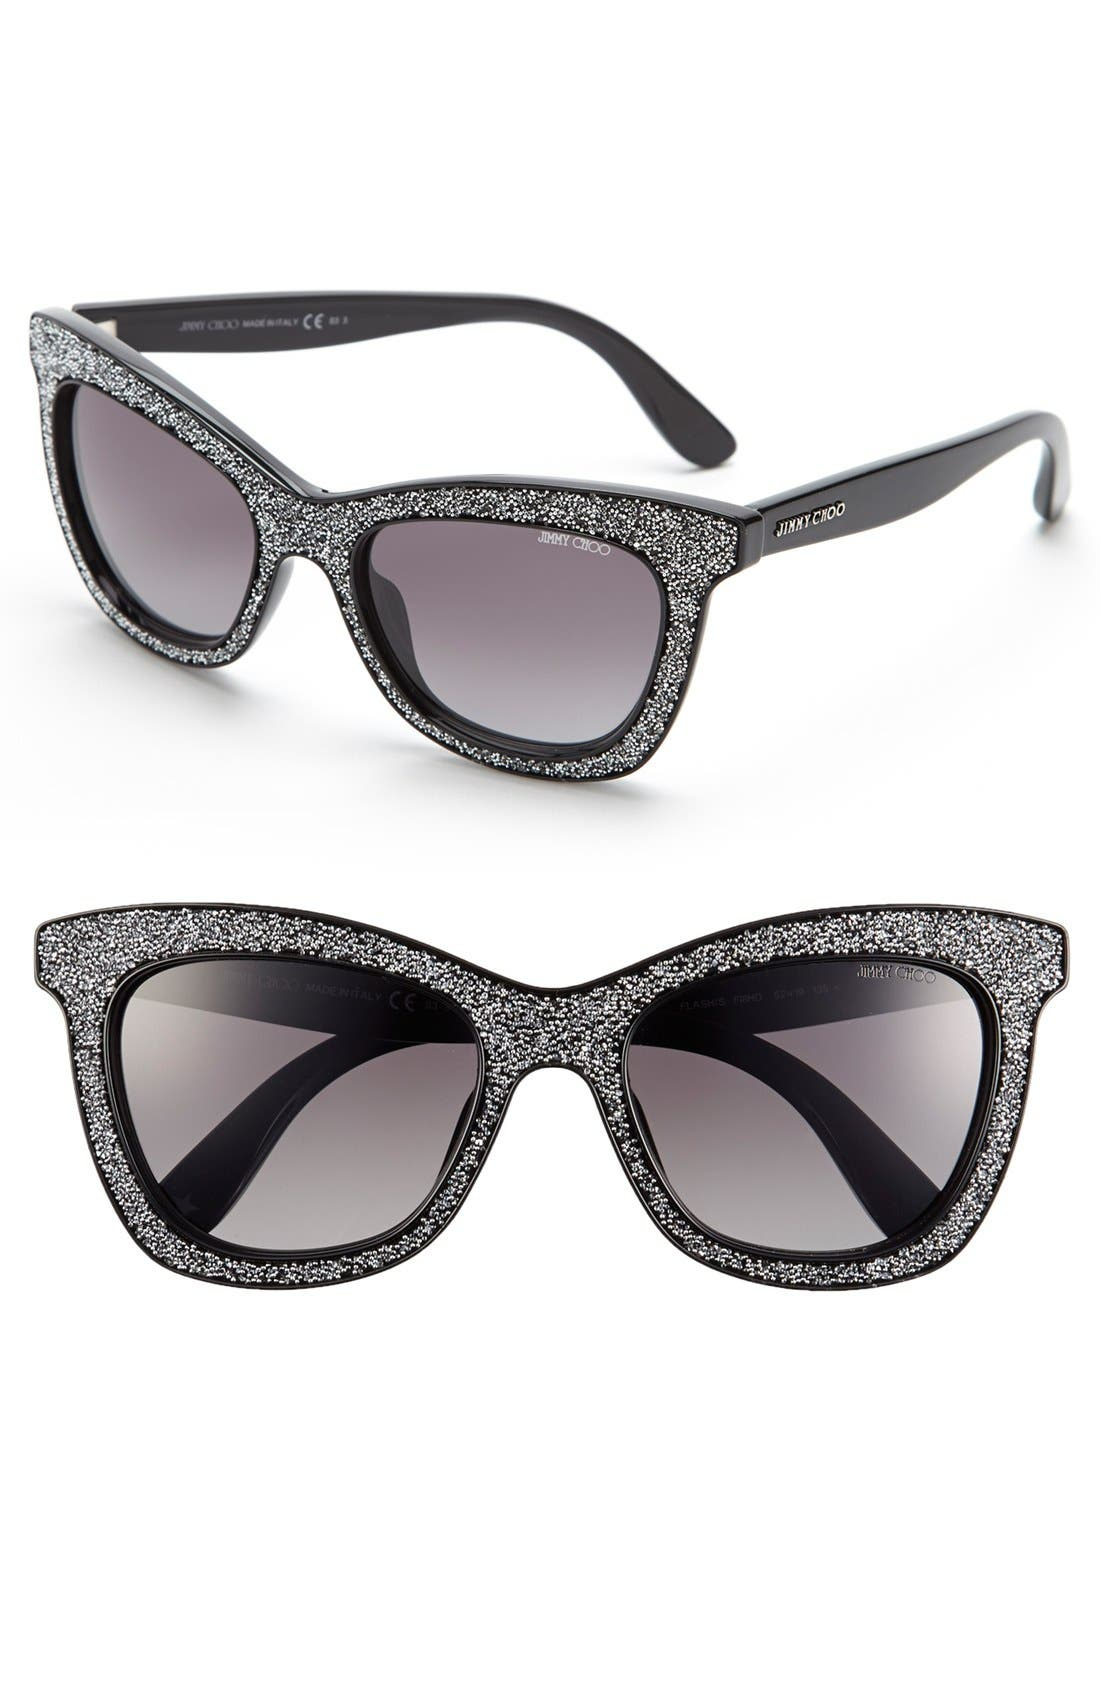 Alternate Image 1 Selected - Jimmy Choo 'Flash' 52mm Sunglasses